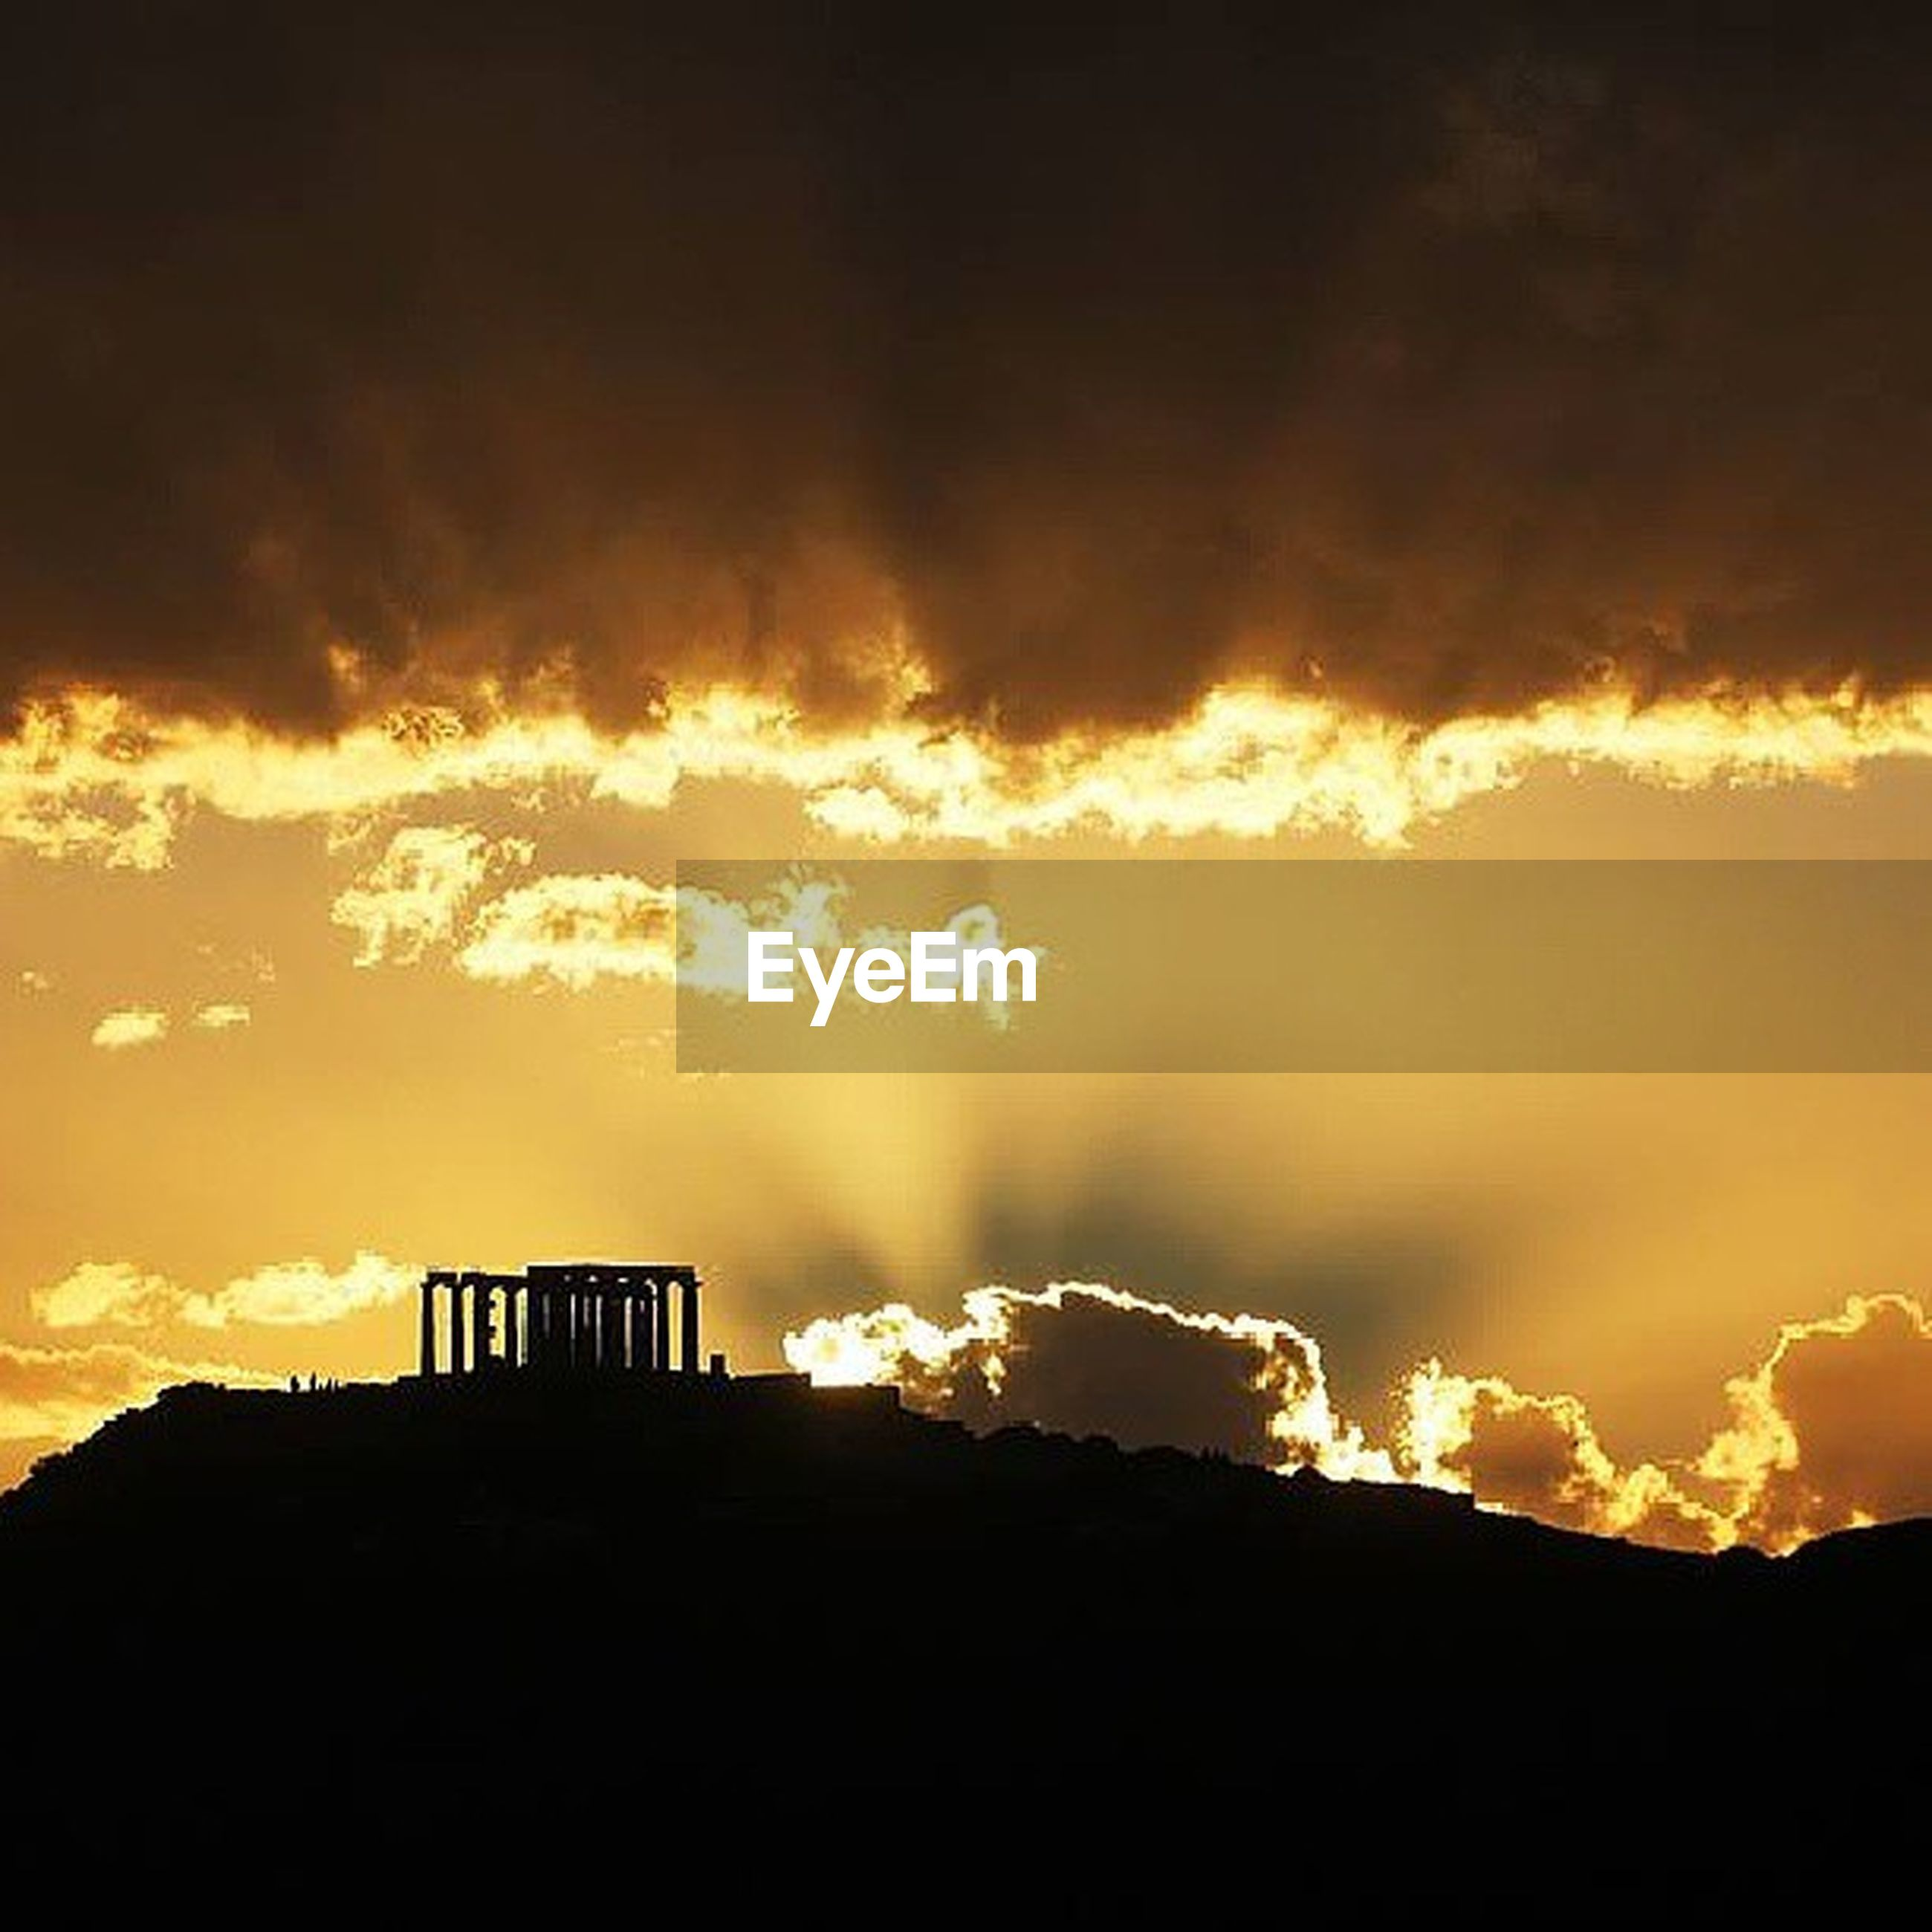 sunset, sky, built structure, cloud - sky, architecture, silhouette, building exterior, sun, sunbeam, orange color, low angle view, cloudy, sunlight, scenics, house, beauty in nature, dramatic sky, cloud, nature, outdoors